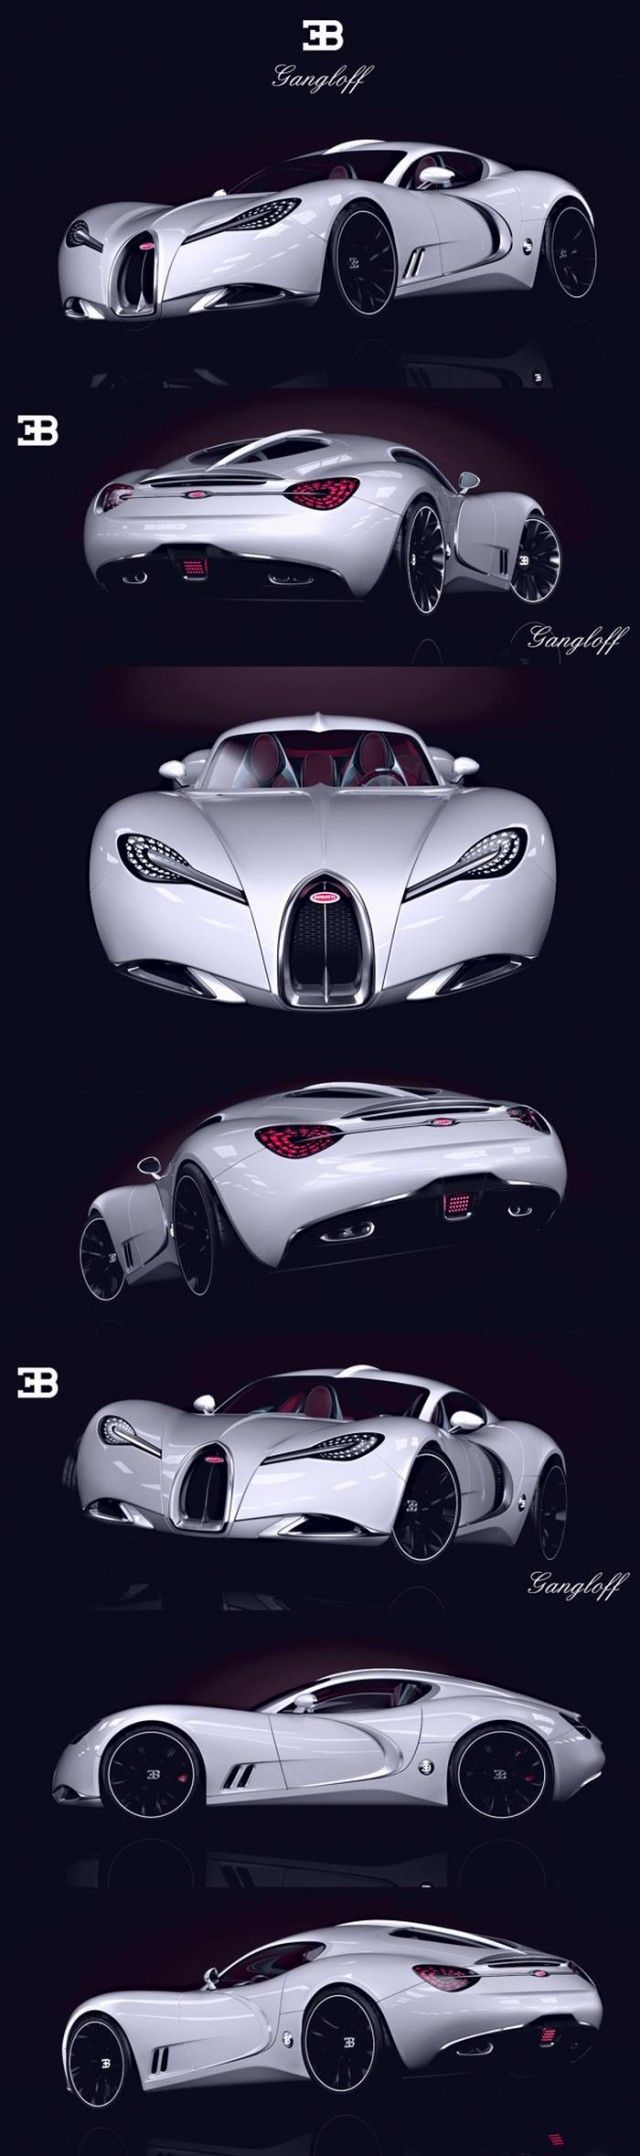 Bugatti Gangloff Concept Car, Invisium By Paweł Czyżewski. U201d In Times Of  Commercial Trash And Plastic It Is Hard To See Something That Has A Soul  And Is ...